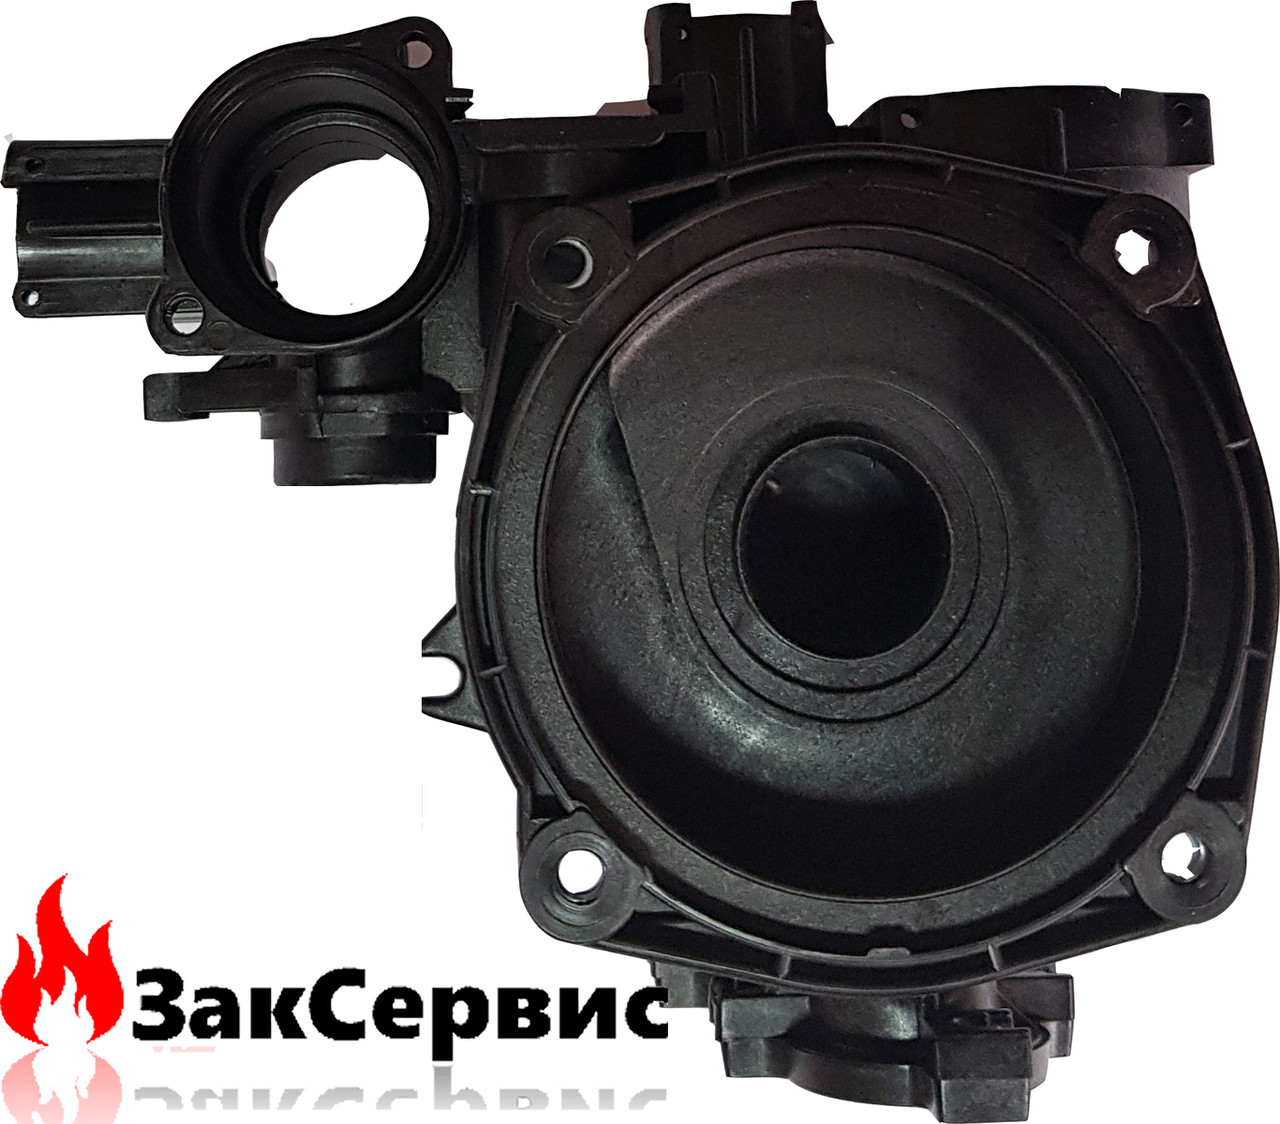 Корпус насоса Ariston Uno 24 MFFI,  24 MI   65104681